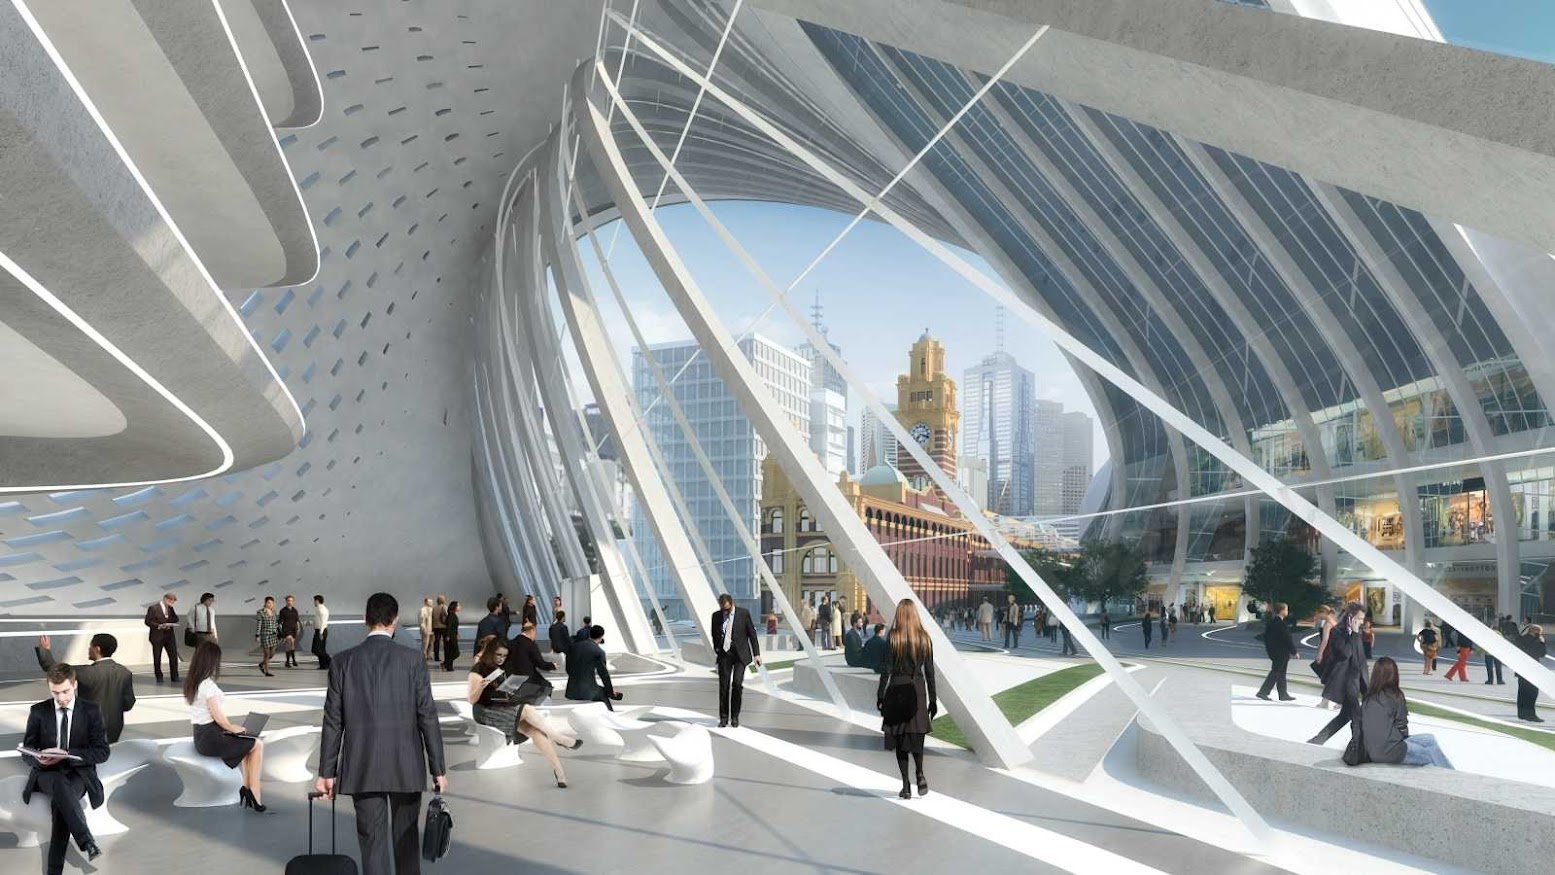 Melbourne Victoria, Australia: [FLINDERS STREET STATION DESIGN COMPETITION BY ZAHA HADID+BVN ARCHITECTURE]